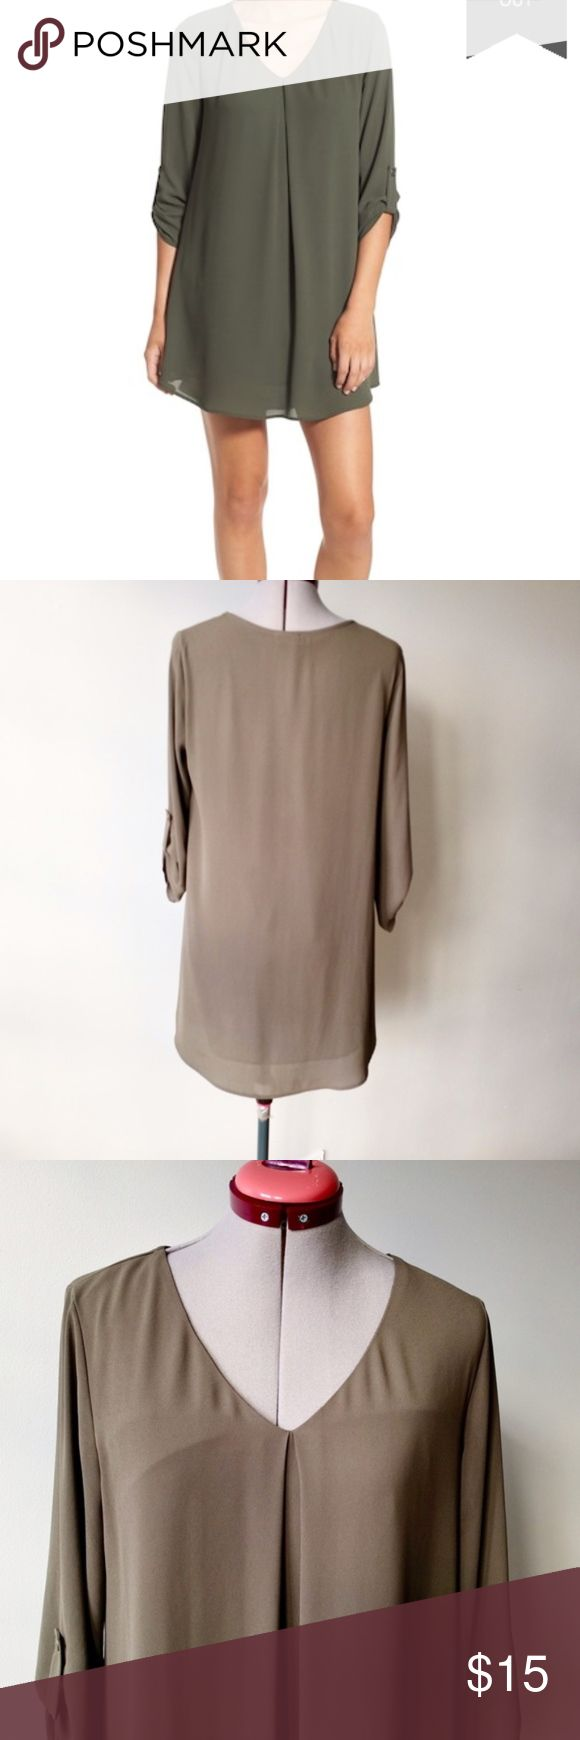 Lush Karly Dress Army Green Color Size S MSRP $48 Blogger favorite from Nordstrom for a steal! Trendy Army Green color perfect for every season. Size S TTS and excellent used condition. Also listing a gorgeous royal blue & wine color options. I offer discount for bundles so grab the opportunity to get all 3 for less then 1 sold for retail. Lush Dresses Mini